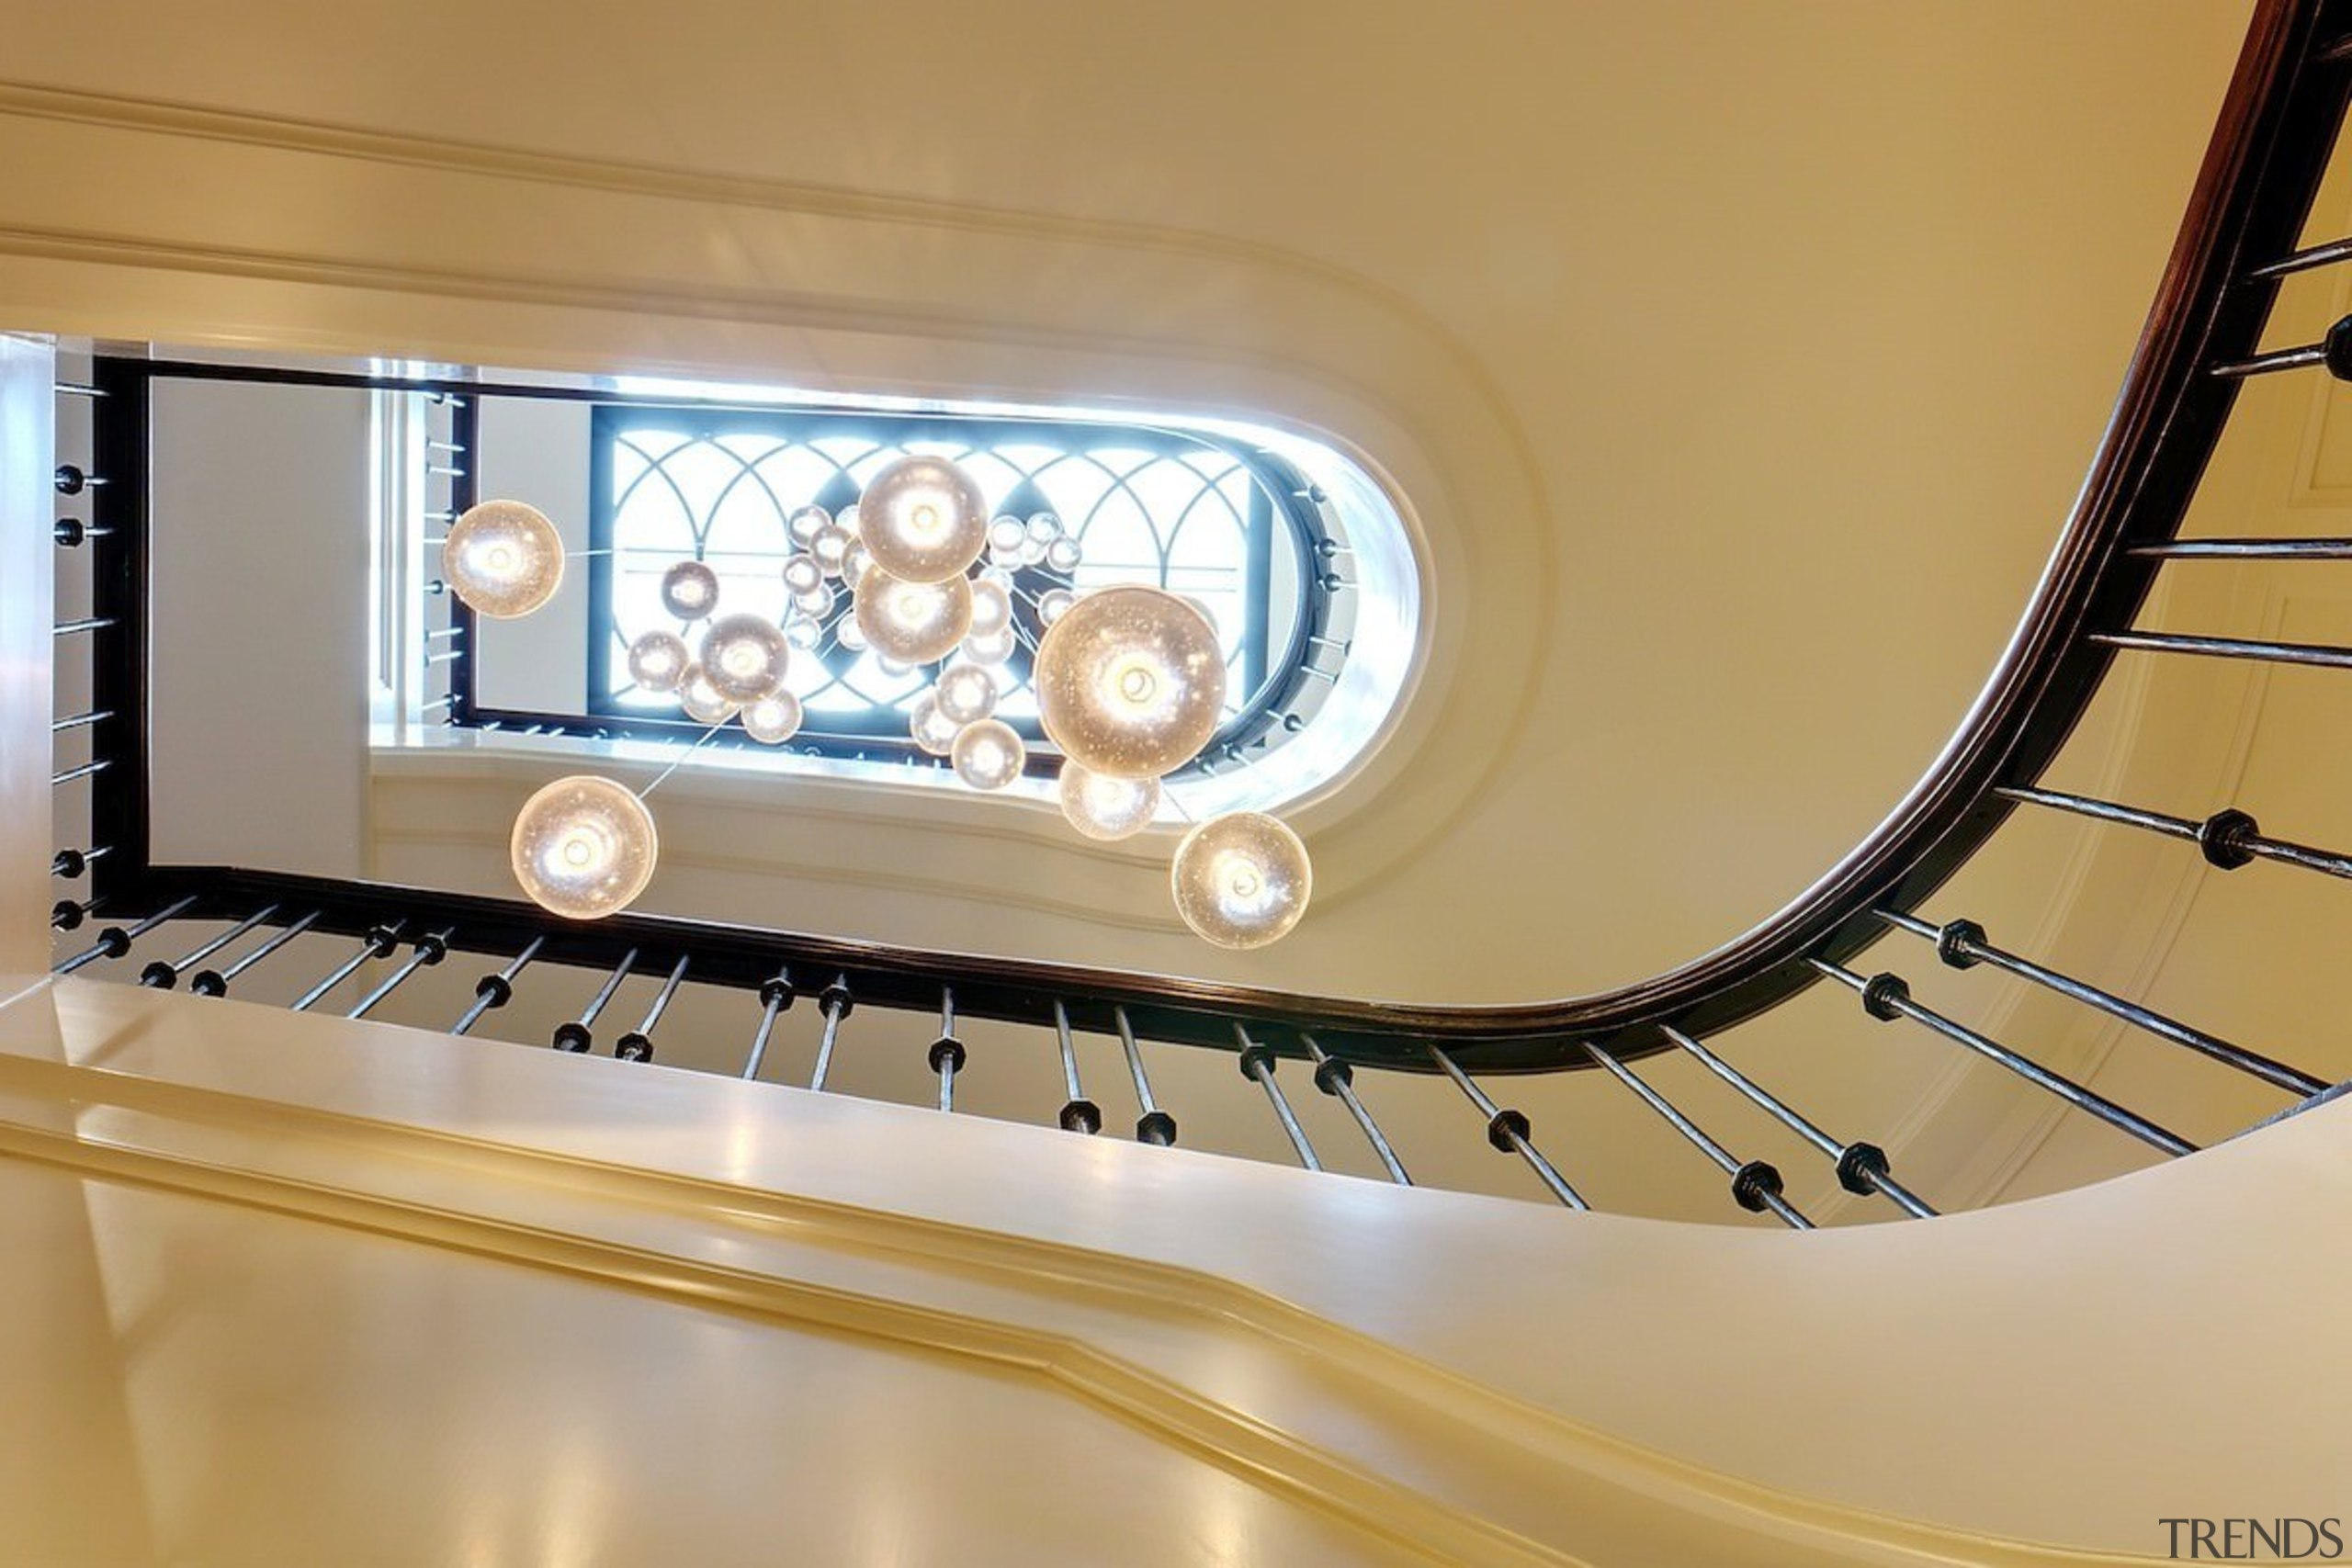 Looking up to the skylight - Looking up architecture, ceiling, daylighting, interior design, lighting, stairs, orange